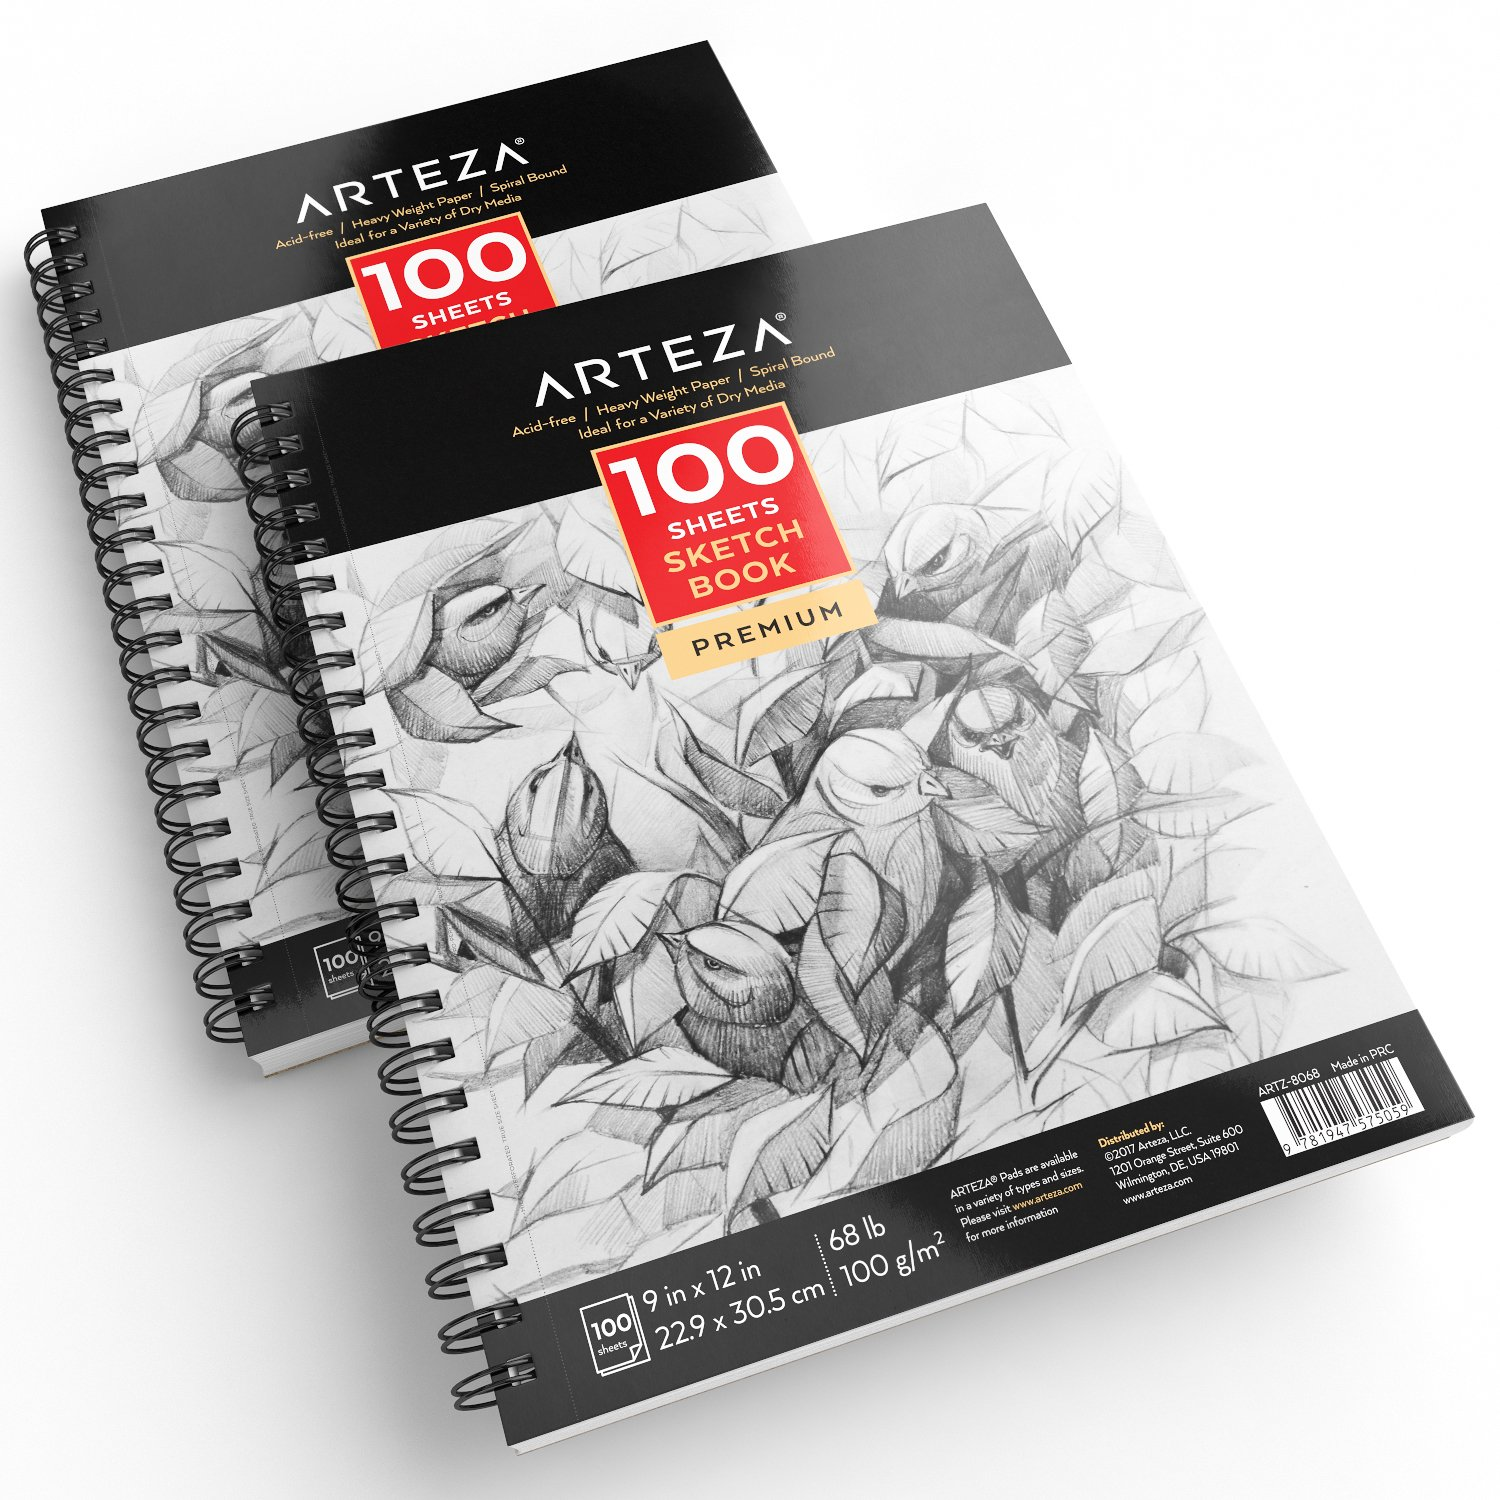 ARTEZA 9X12'' Sketch Book, Pack of 2, 200 Sheets (68 lb/100gsm), Spiral Bound Artist Sketch Pad, 100 Sheets Each, Durable Acid Free Drawing Paper, Ideal for Kids & Adults, Bright White by ARTEZA